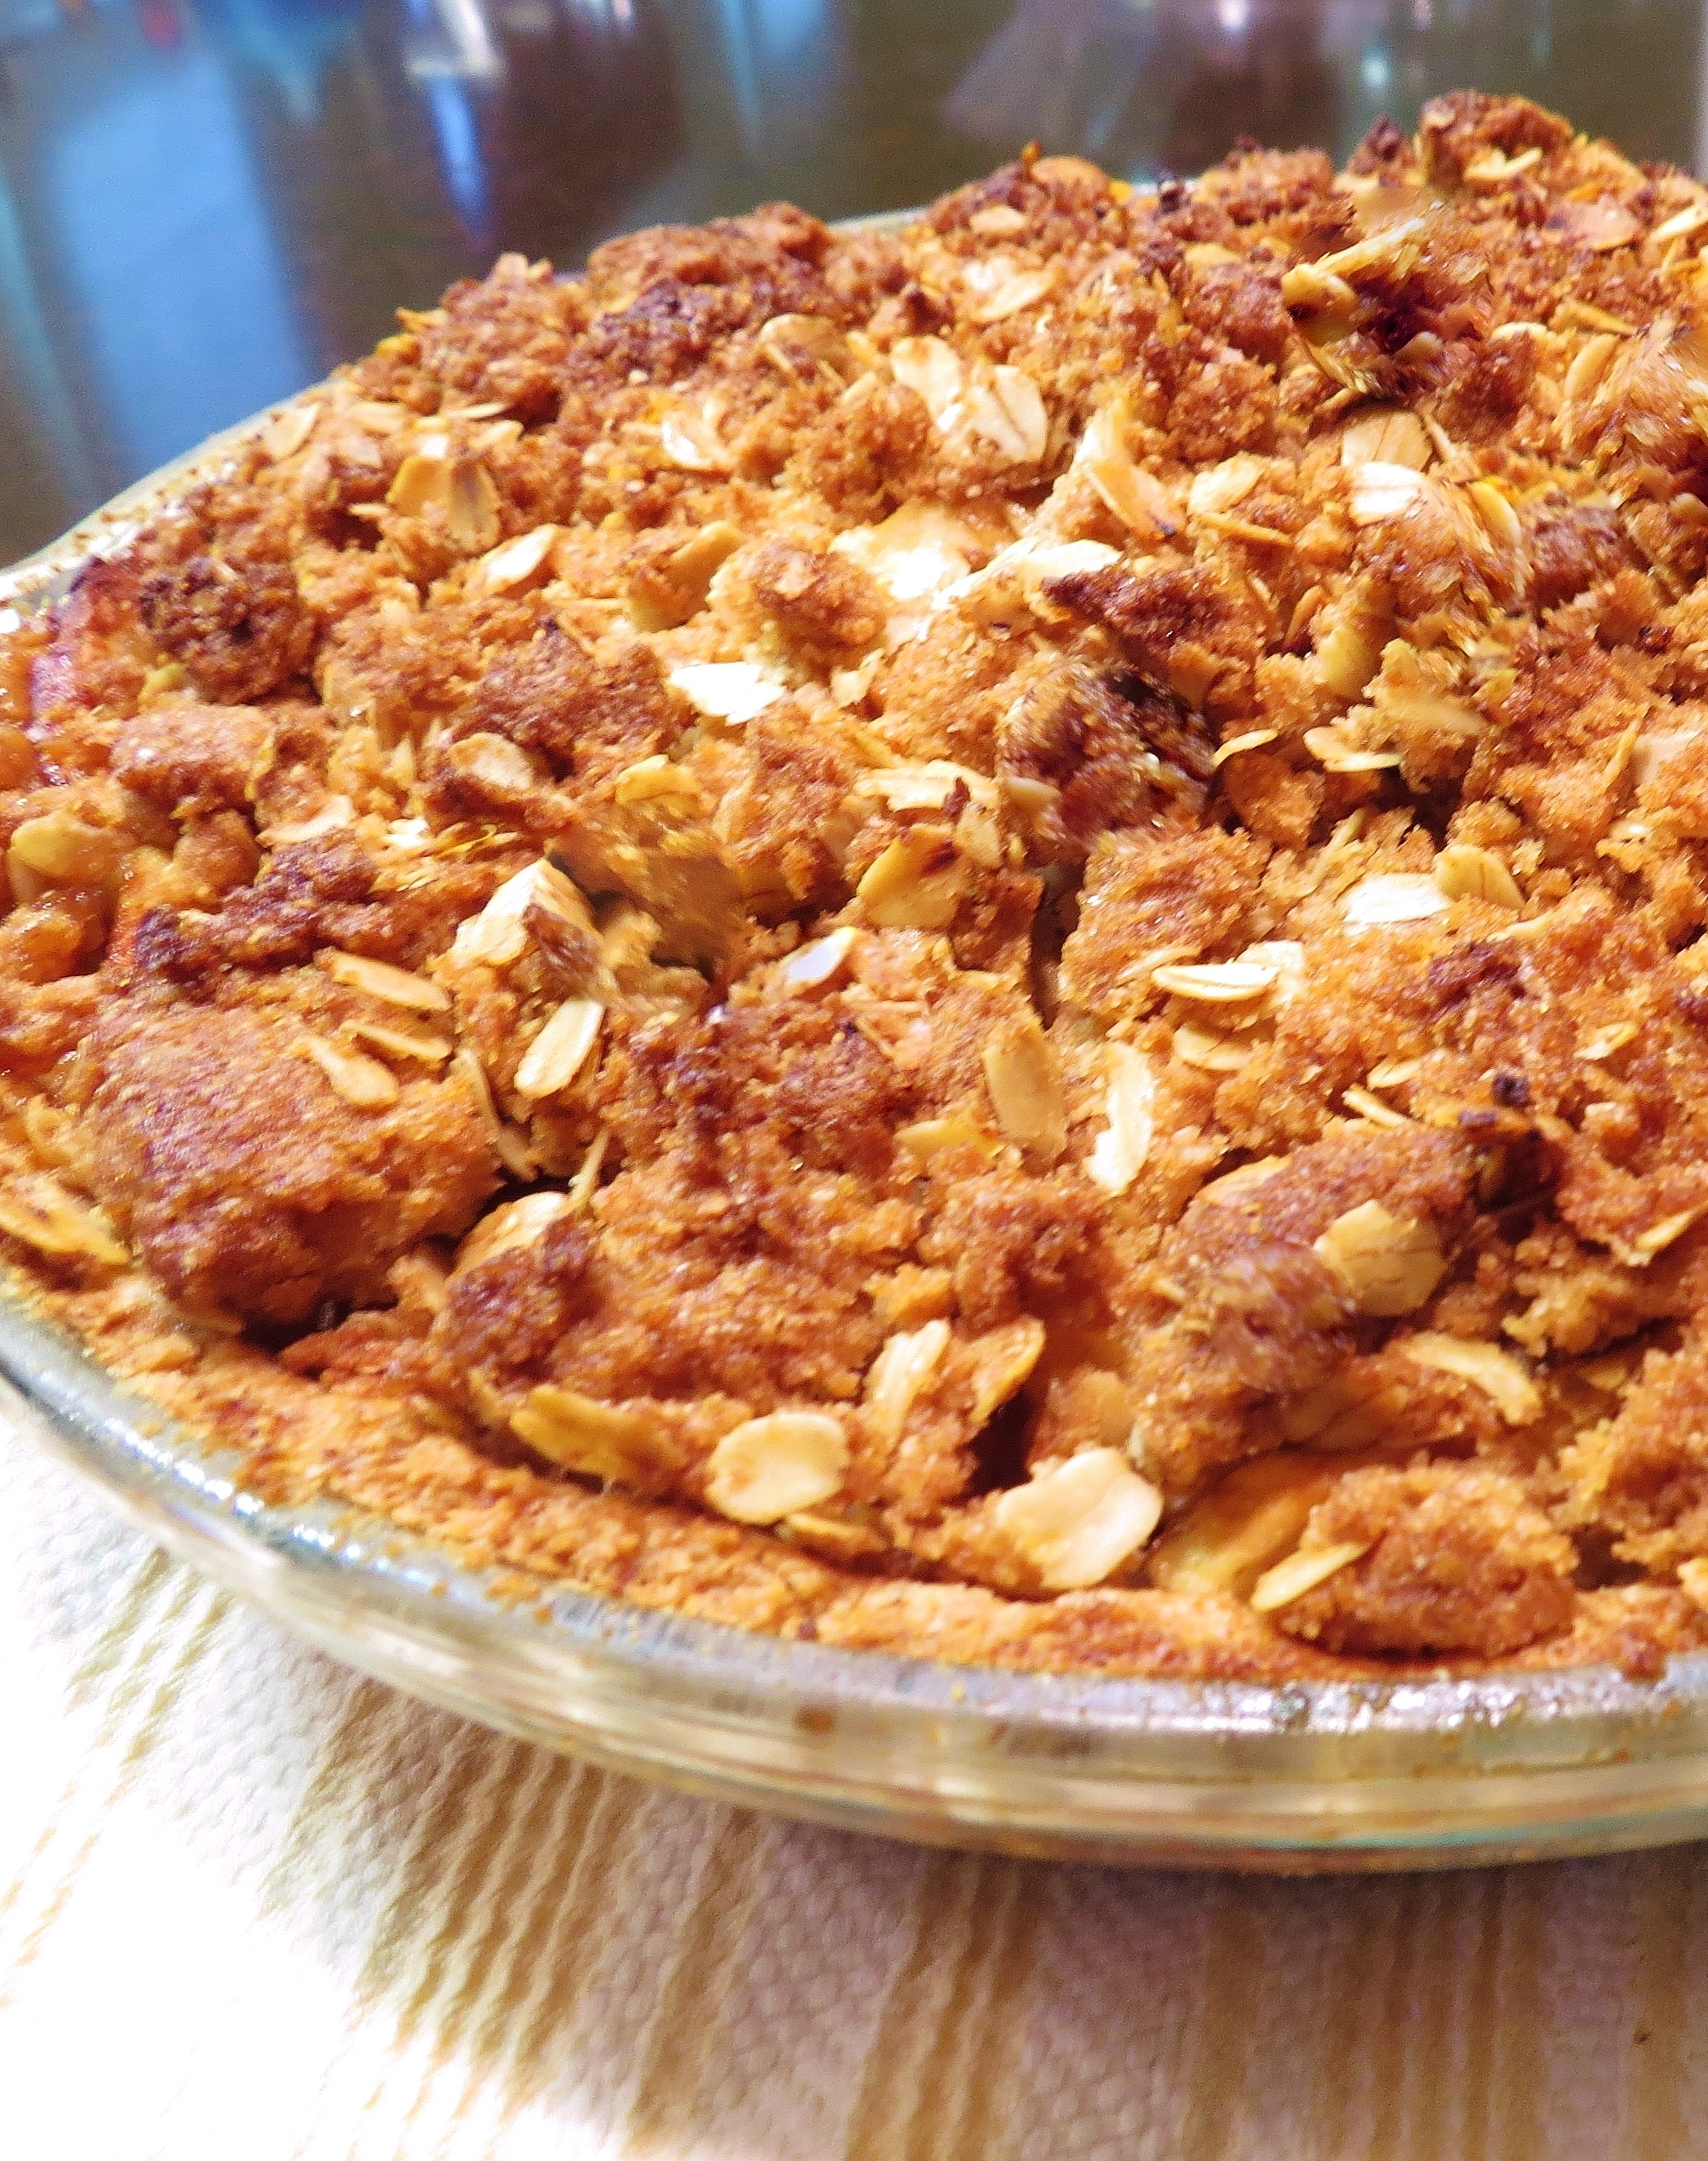 The finished apple pie, whole wheat crust and oatmeal crunch..